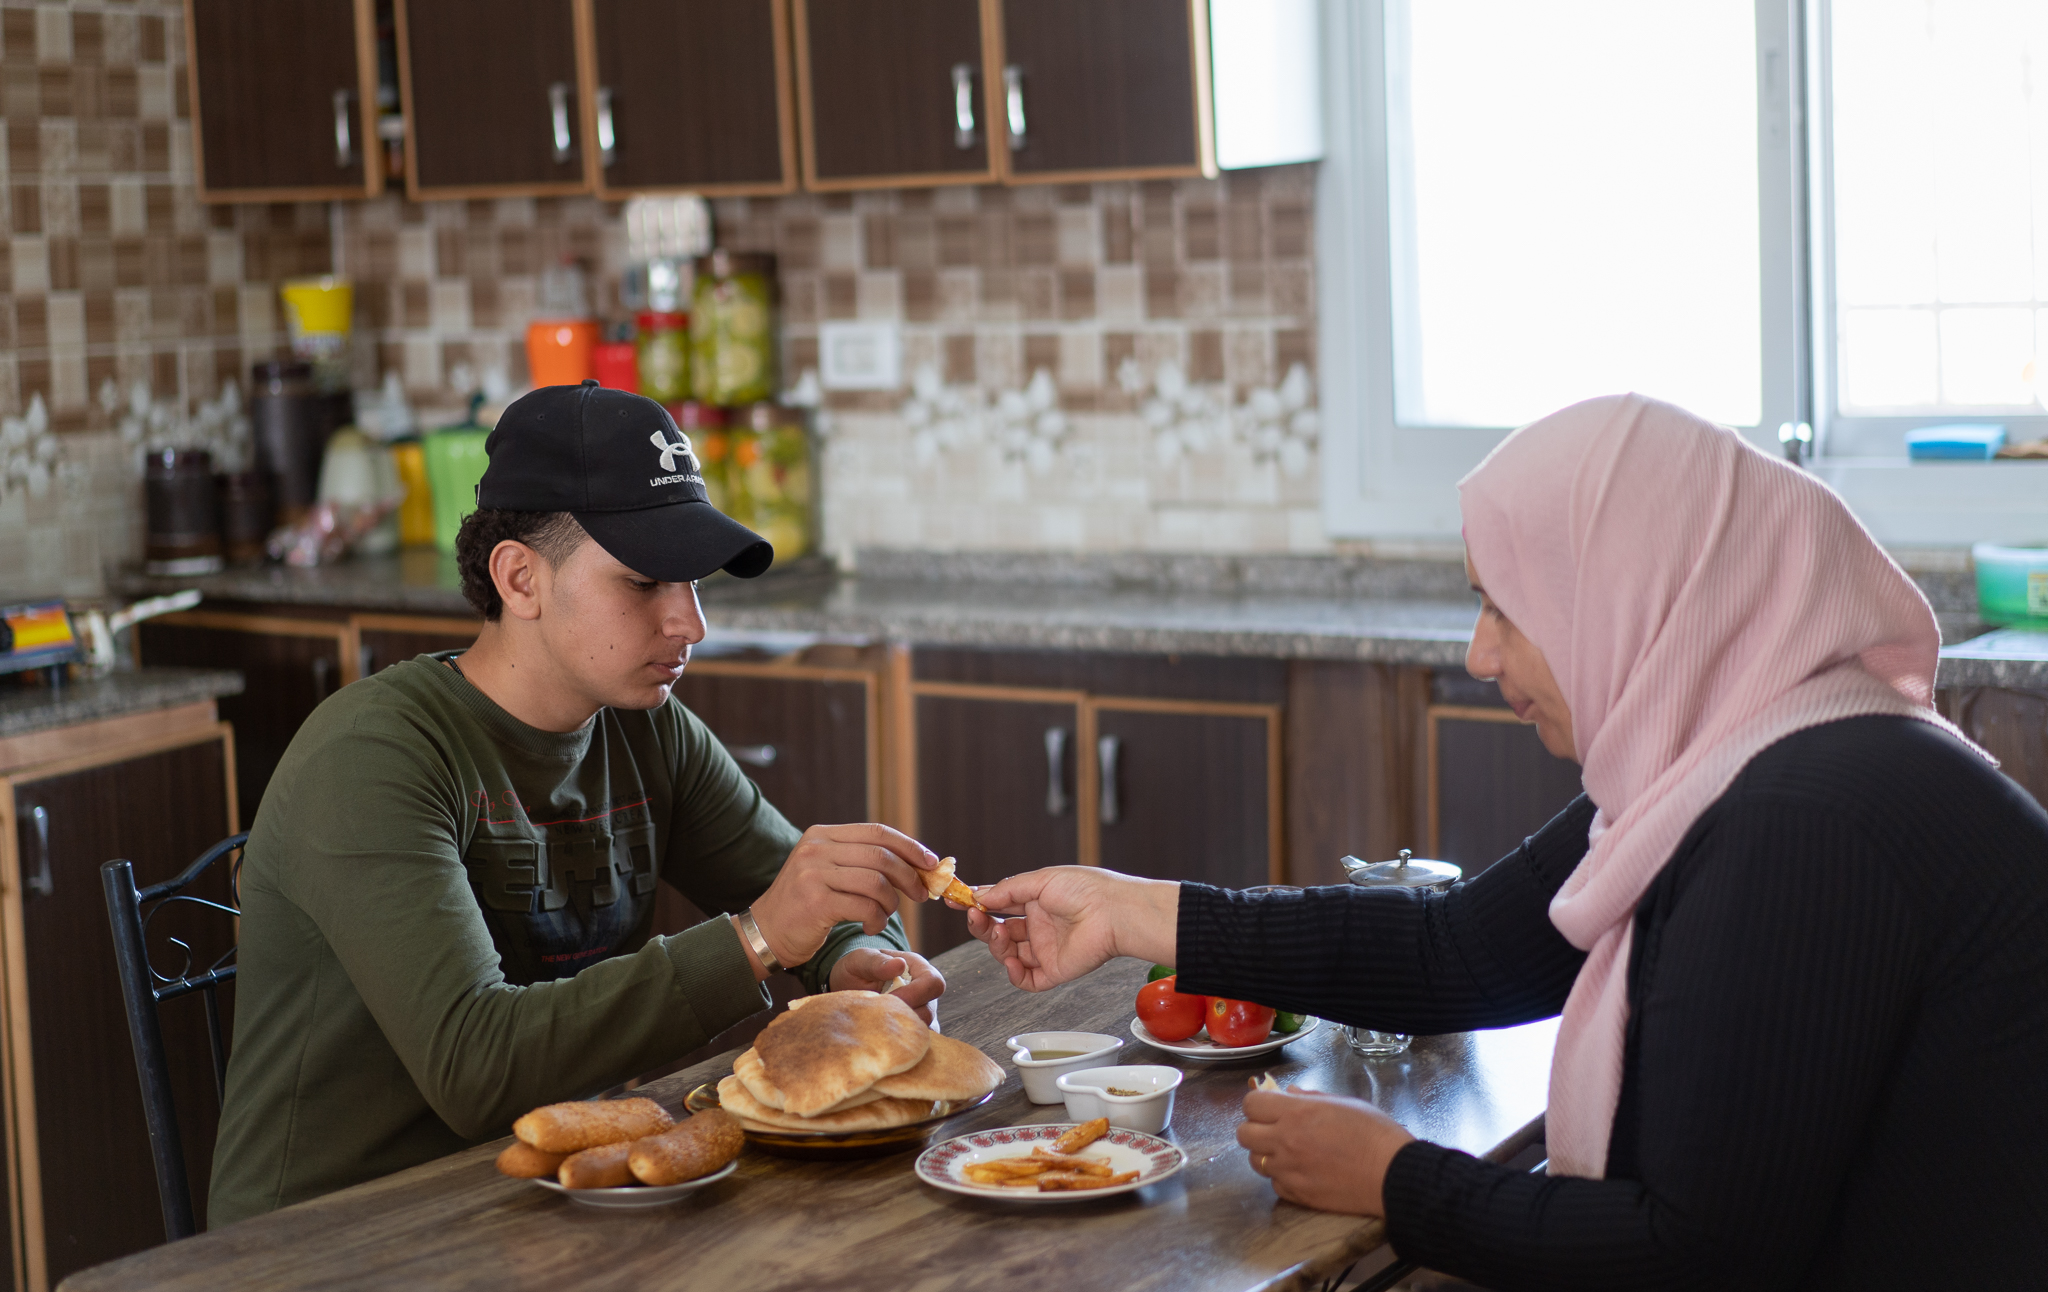 Ismail shares a meal with his mother at their home in Beit Fajjar in the occupied West Bank. (Photo: DCIP)